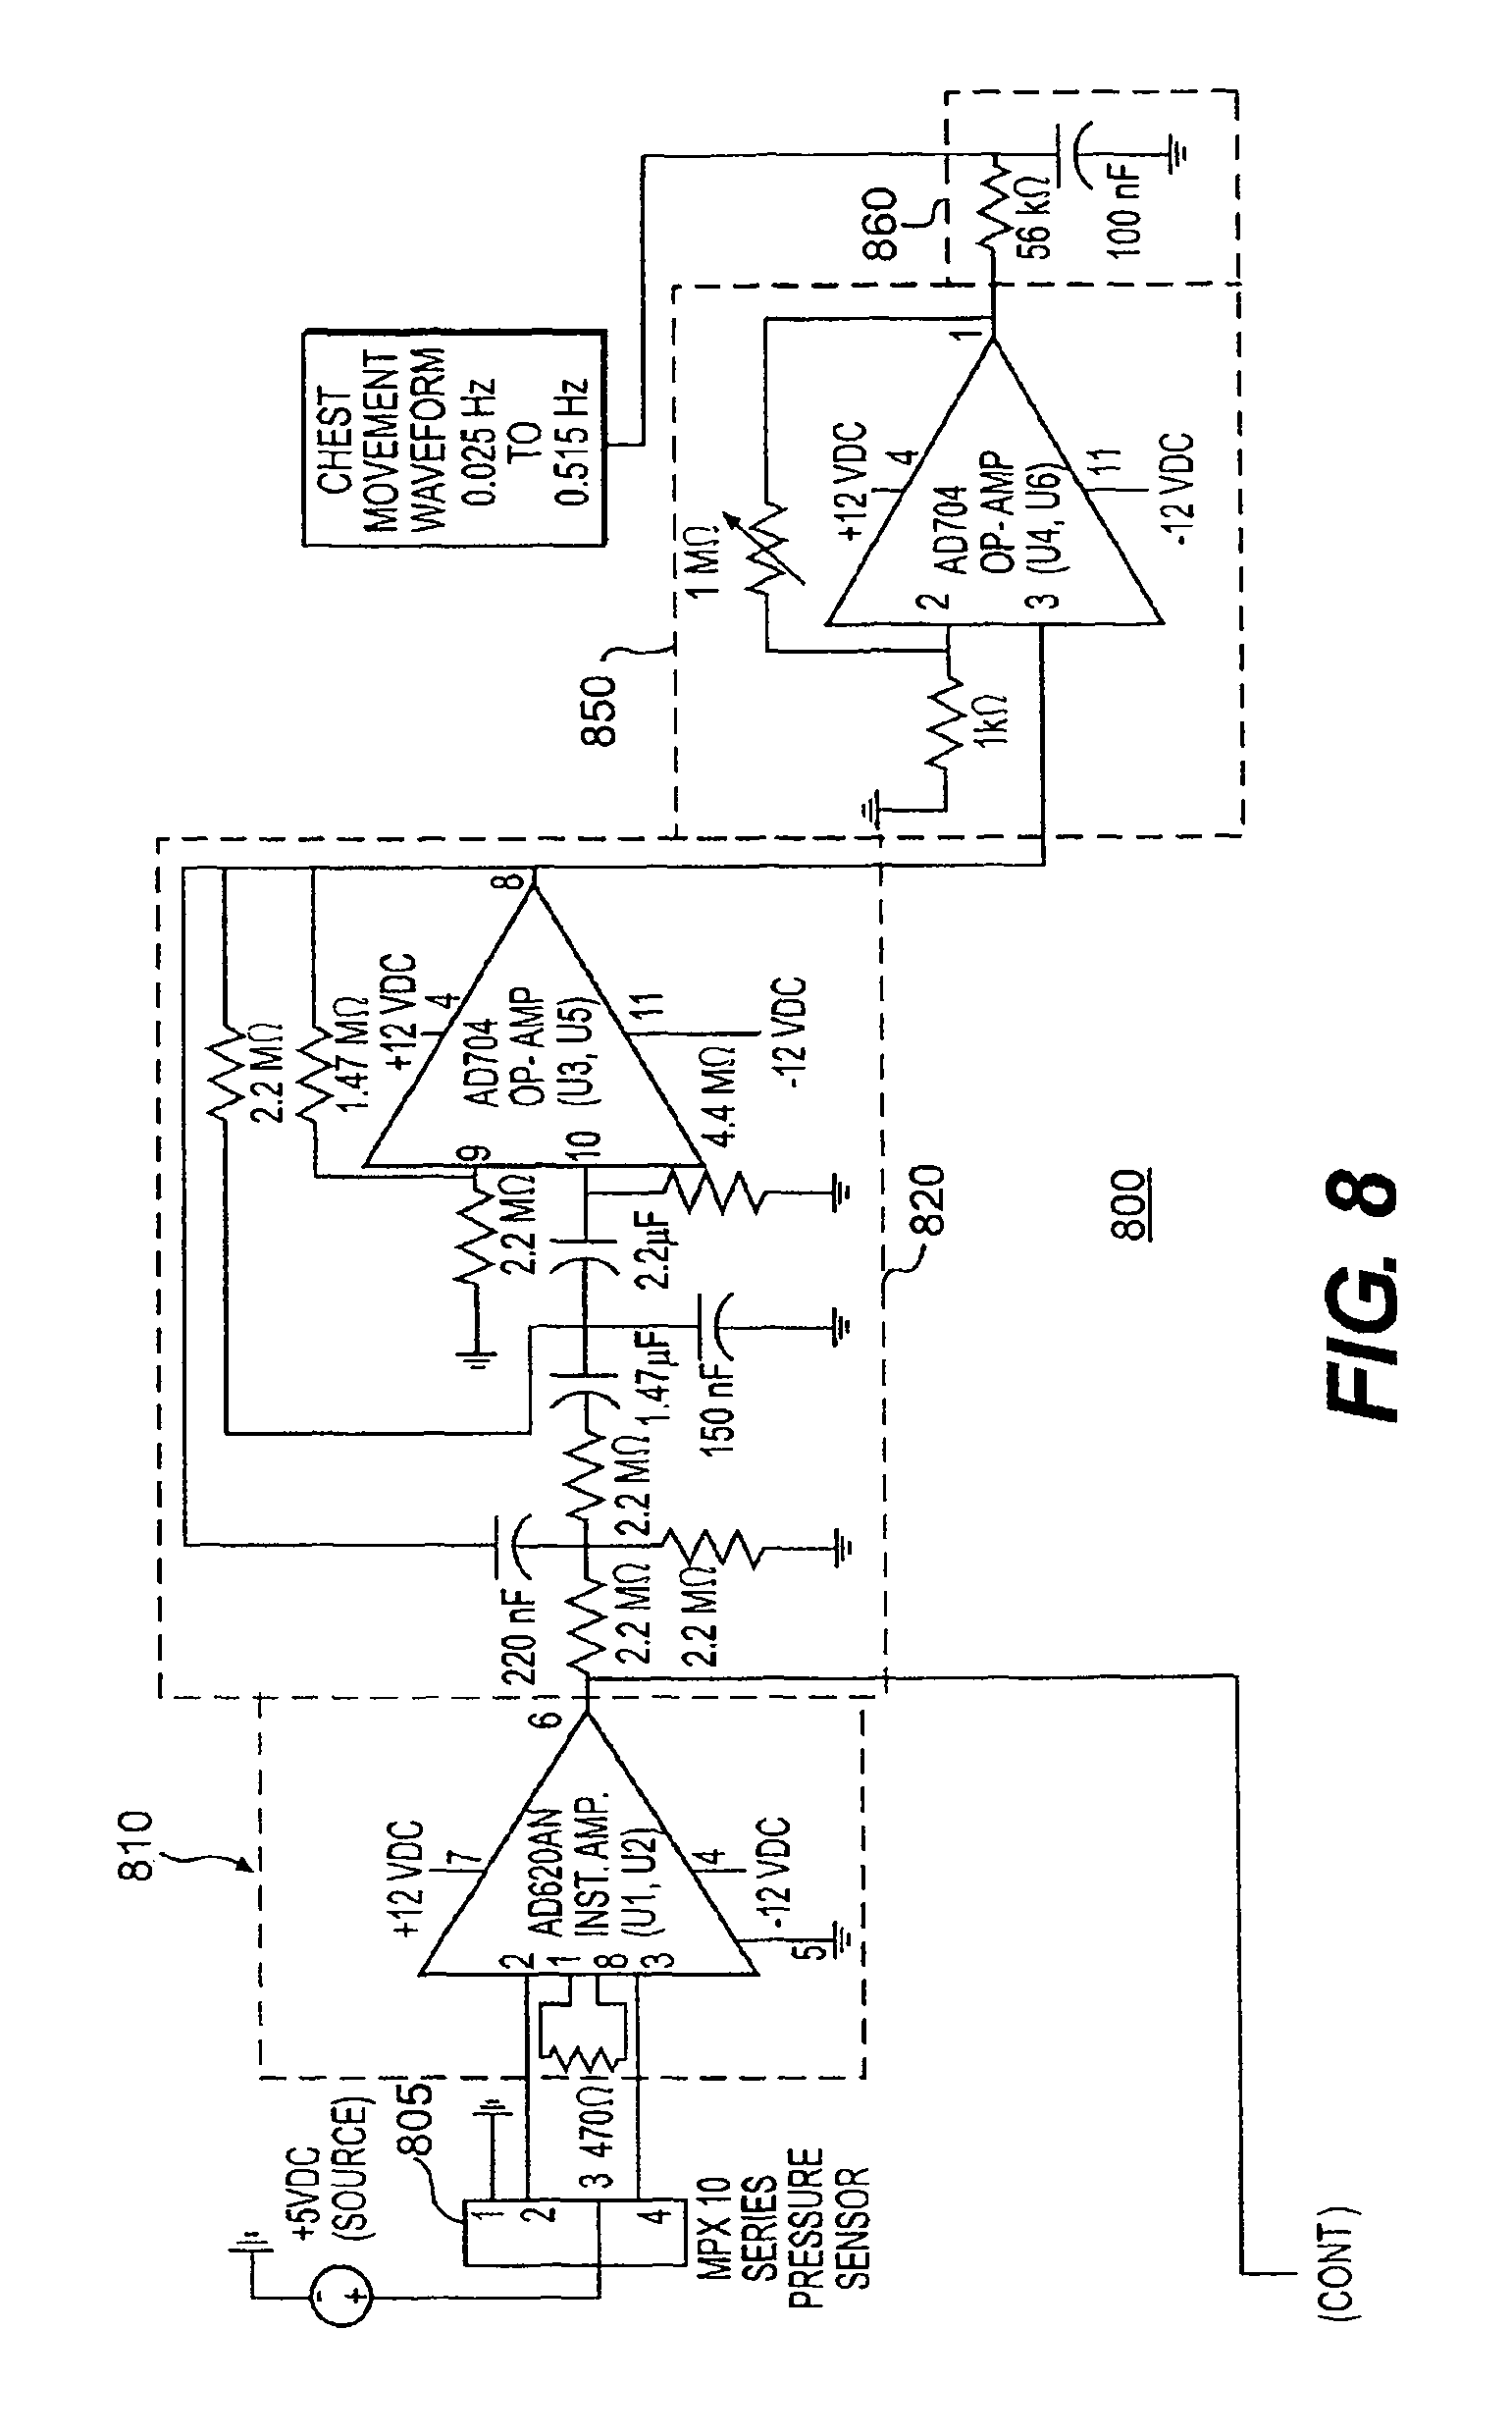 Patent Us7785257 System And Process For Non Invasive Collection Emg Block Diagram As Well Sensor Lifier Circuit Piezo On Capacitive Drawing